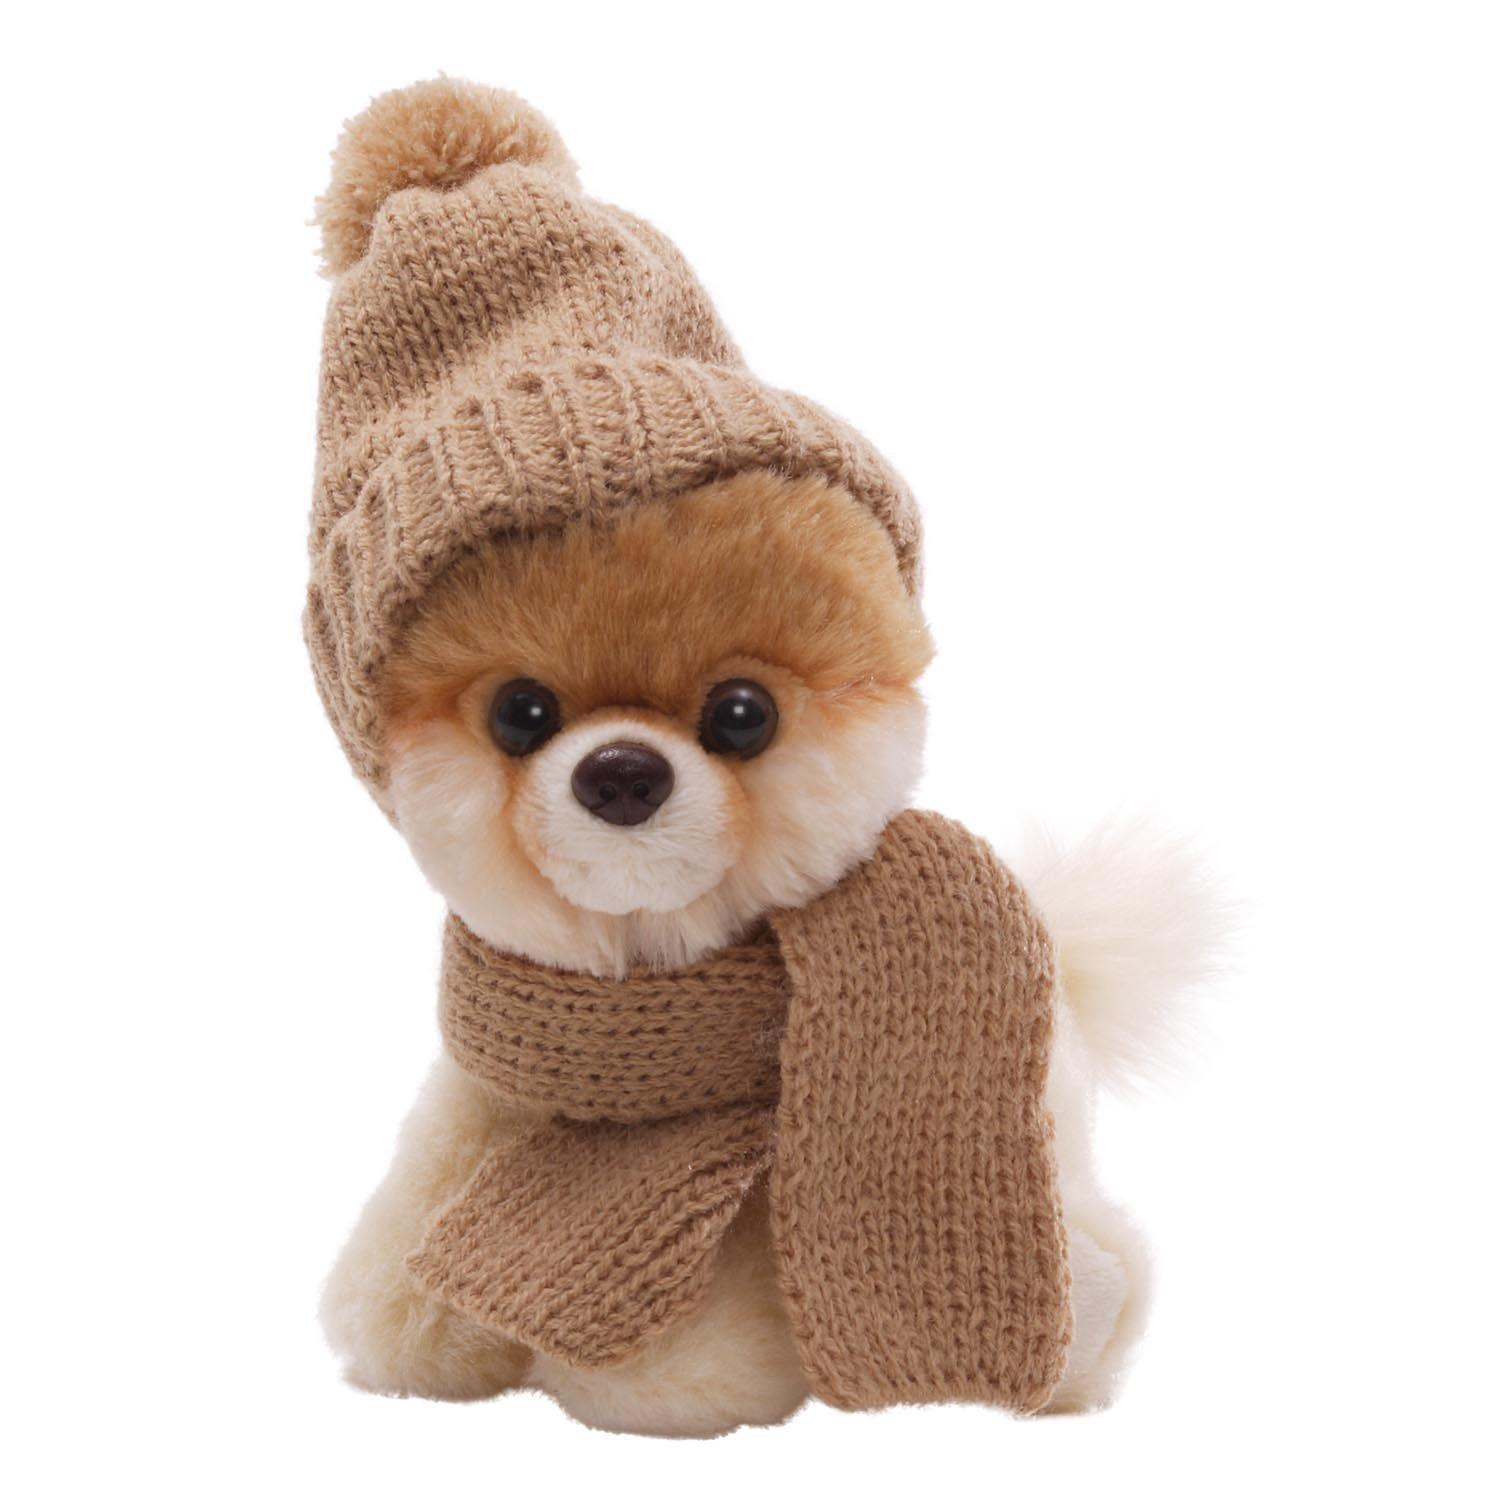 """Gund 5"""" Itty Bitty Boo in Knit Scarf and Cap Plush"""